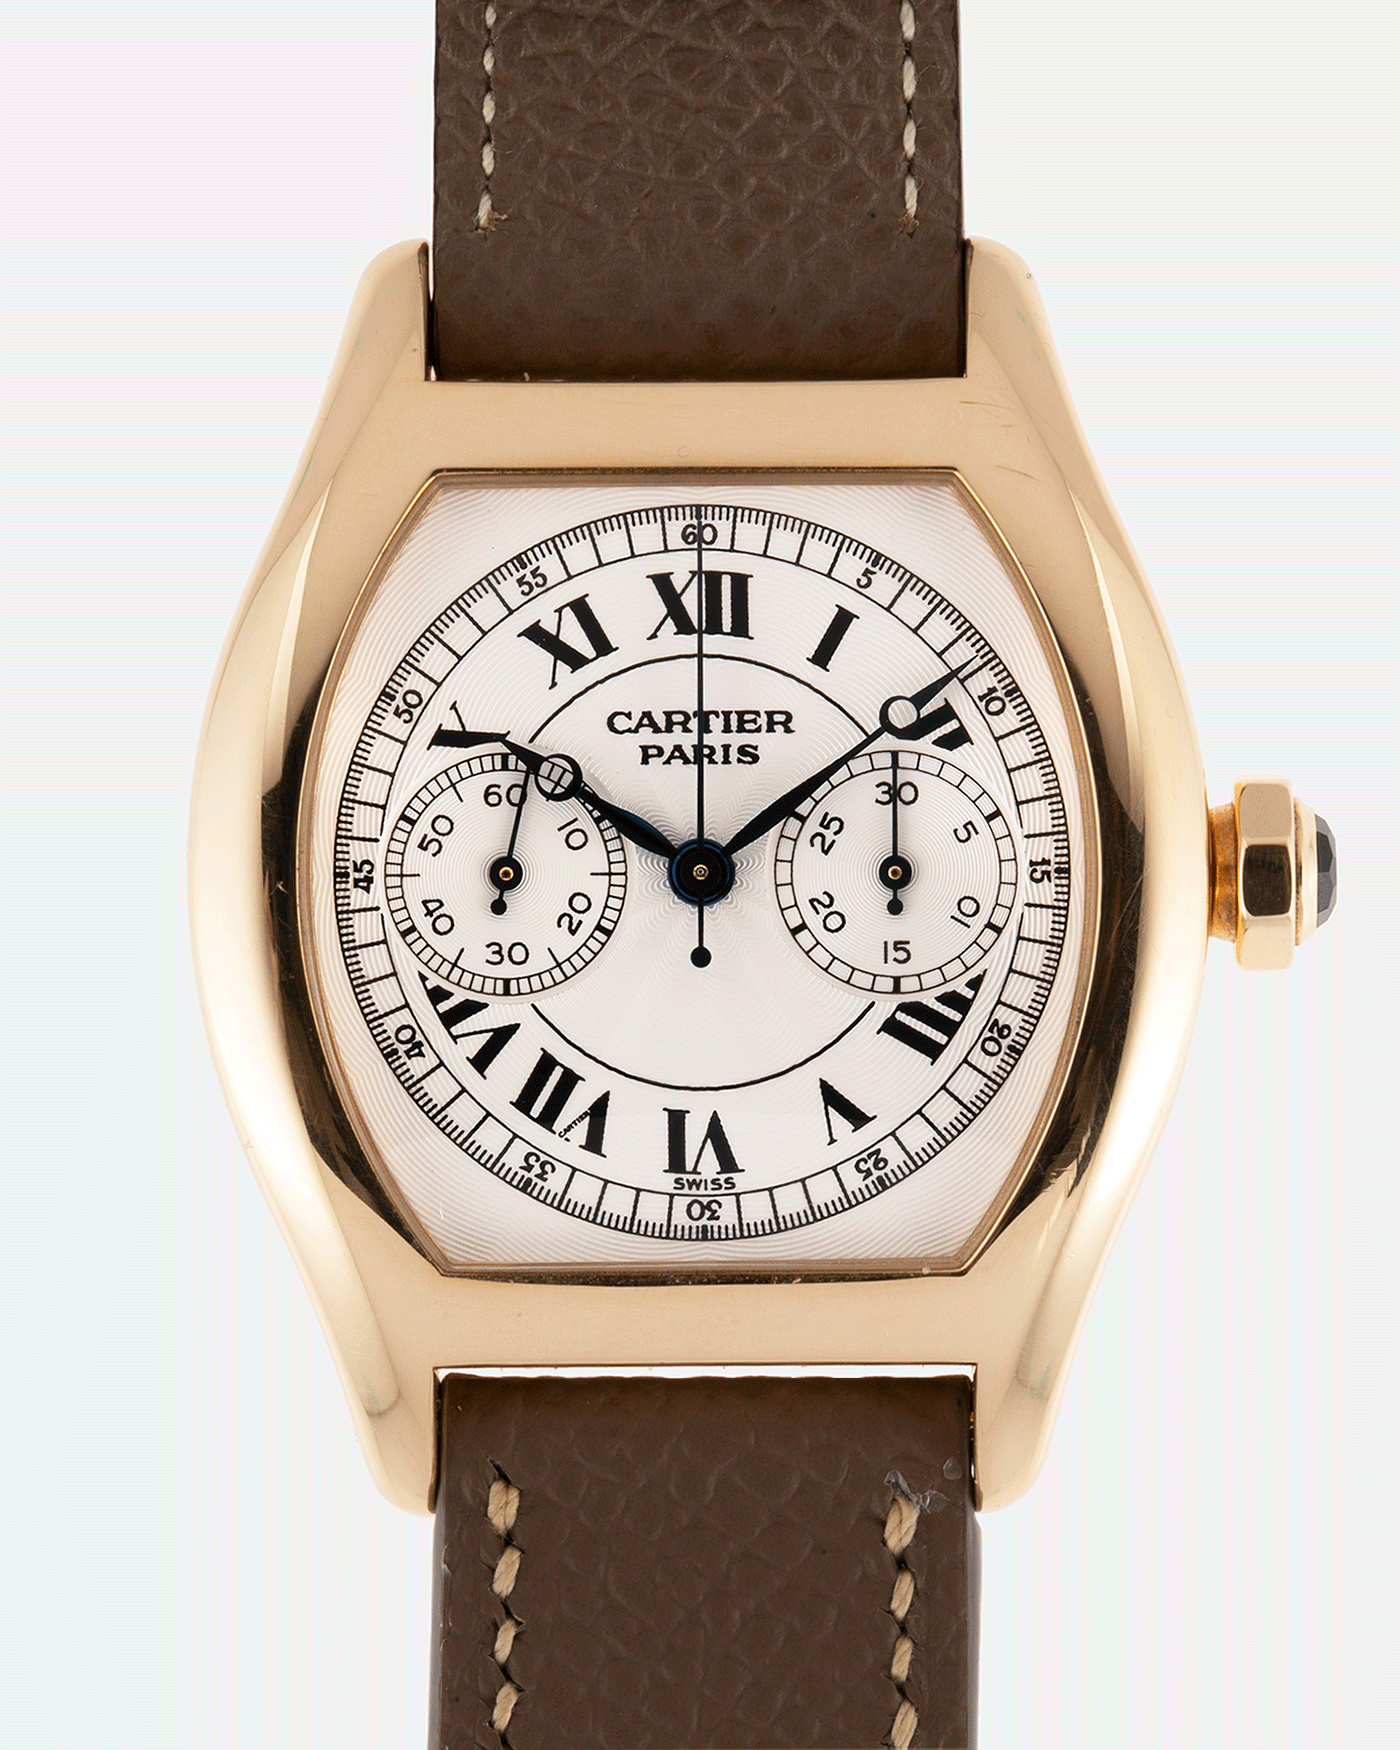 Brand: Cartier Year: 2000's Model: CPCP Collection Prive Tortue Monopoussoir Reference: 2356E Material: 18k Yellow Gold Movement: THA Cal. 045MC Case Diameter: 43 x 35 mm Strap: Cartier Nostime Taupe Grained Calf with 18k Cartier Yellow Gold Deployant F.P. Journe